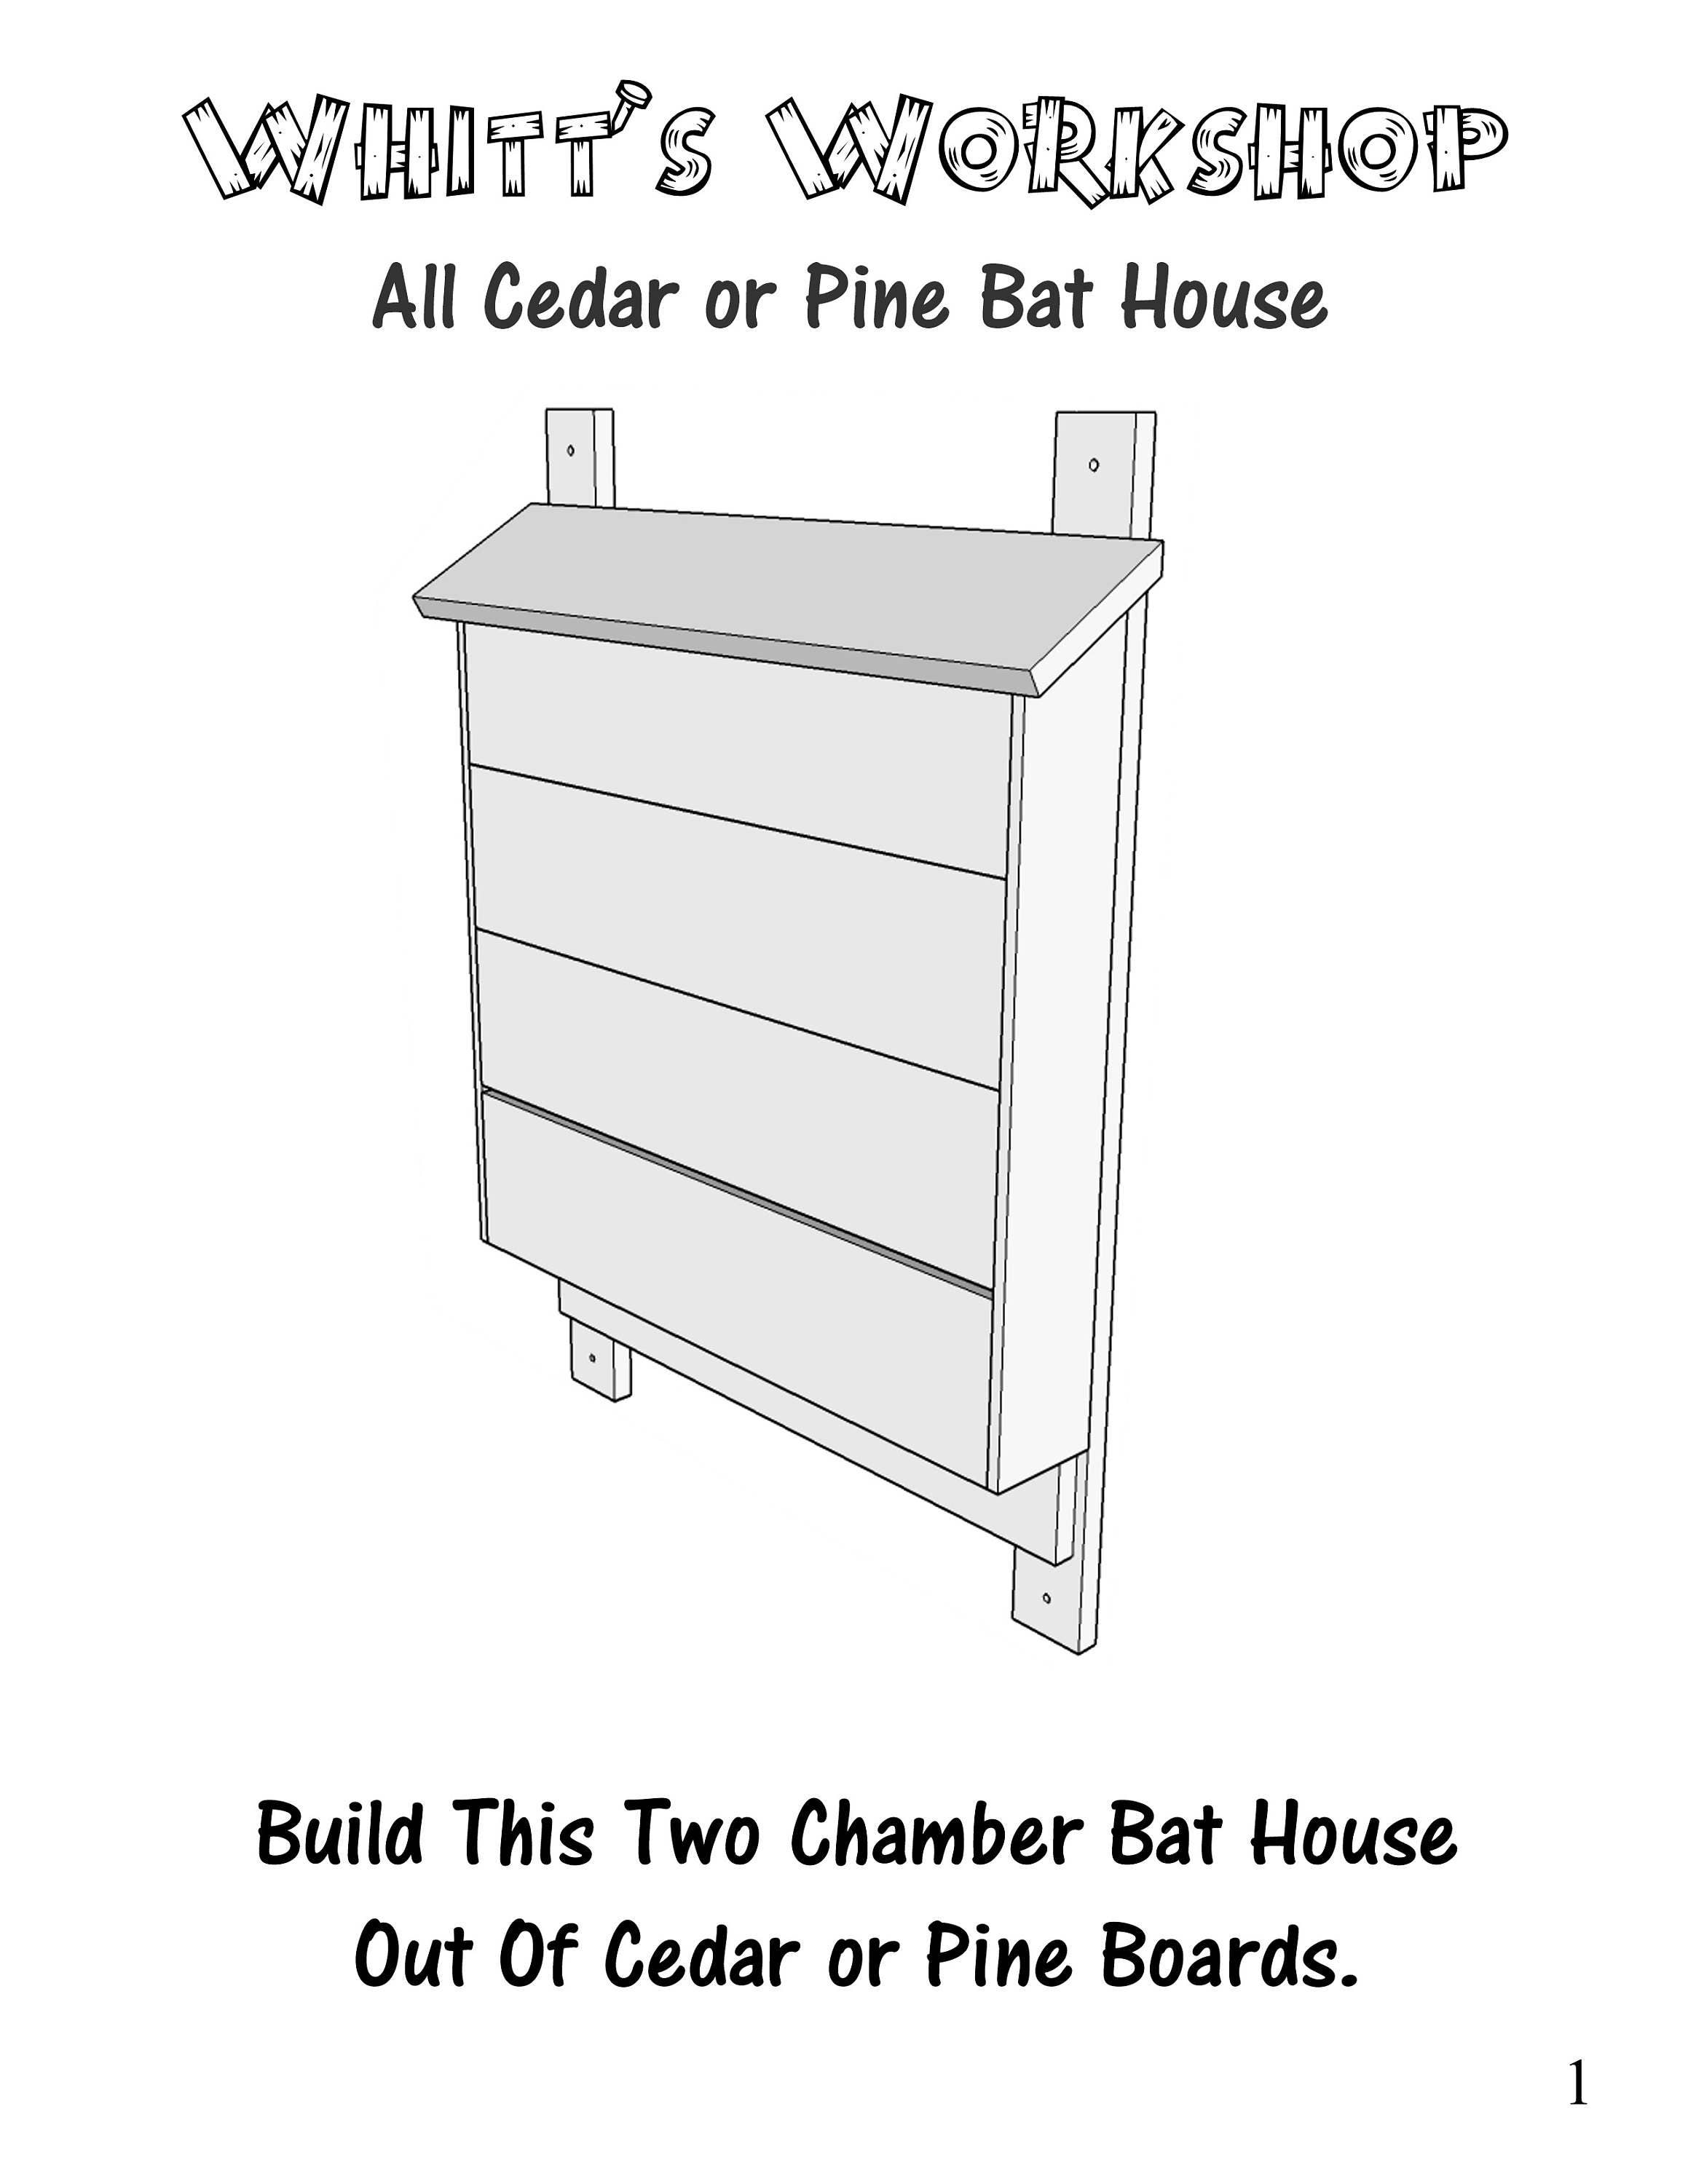 Cedar or Pine Bat House PFD File Wood Plans Blueprints